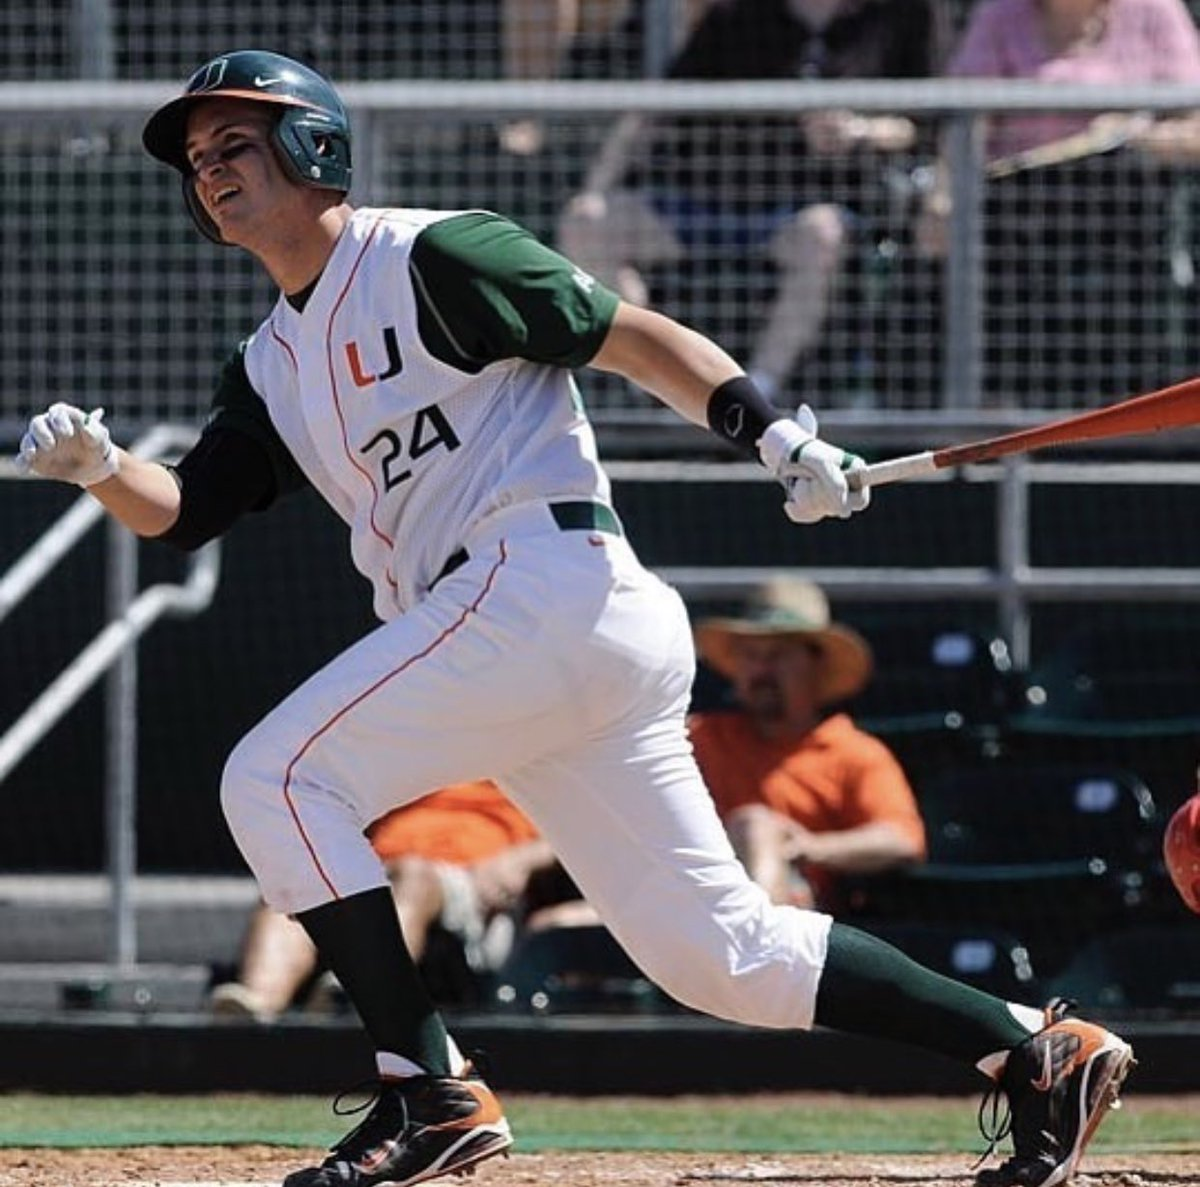 Honored and blessed to be part of such a group @UMSHoF @CanesBaseball twitter.com/umshof/status/…